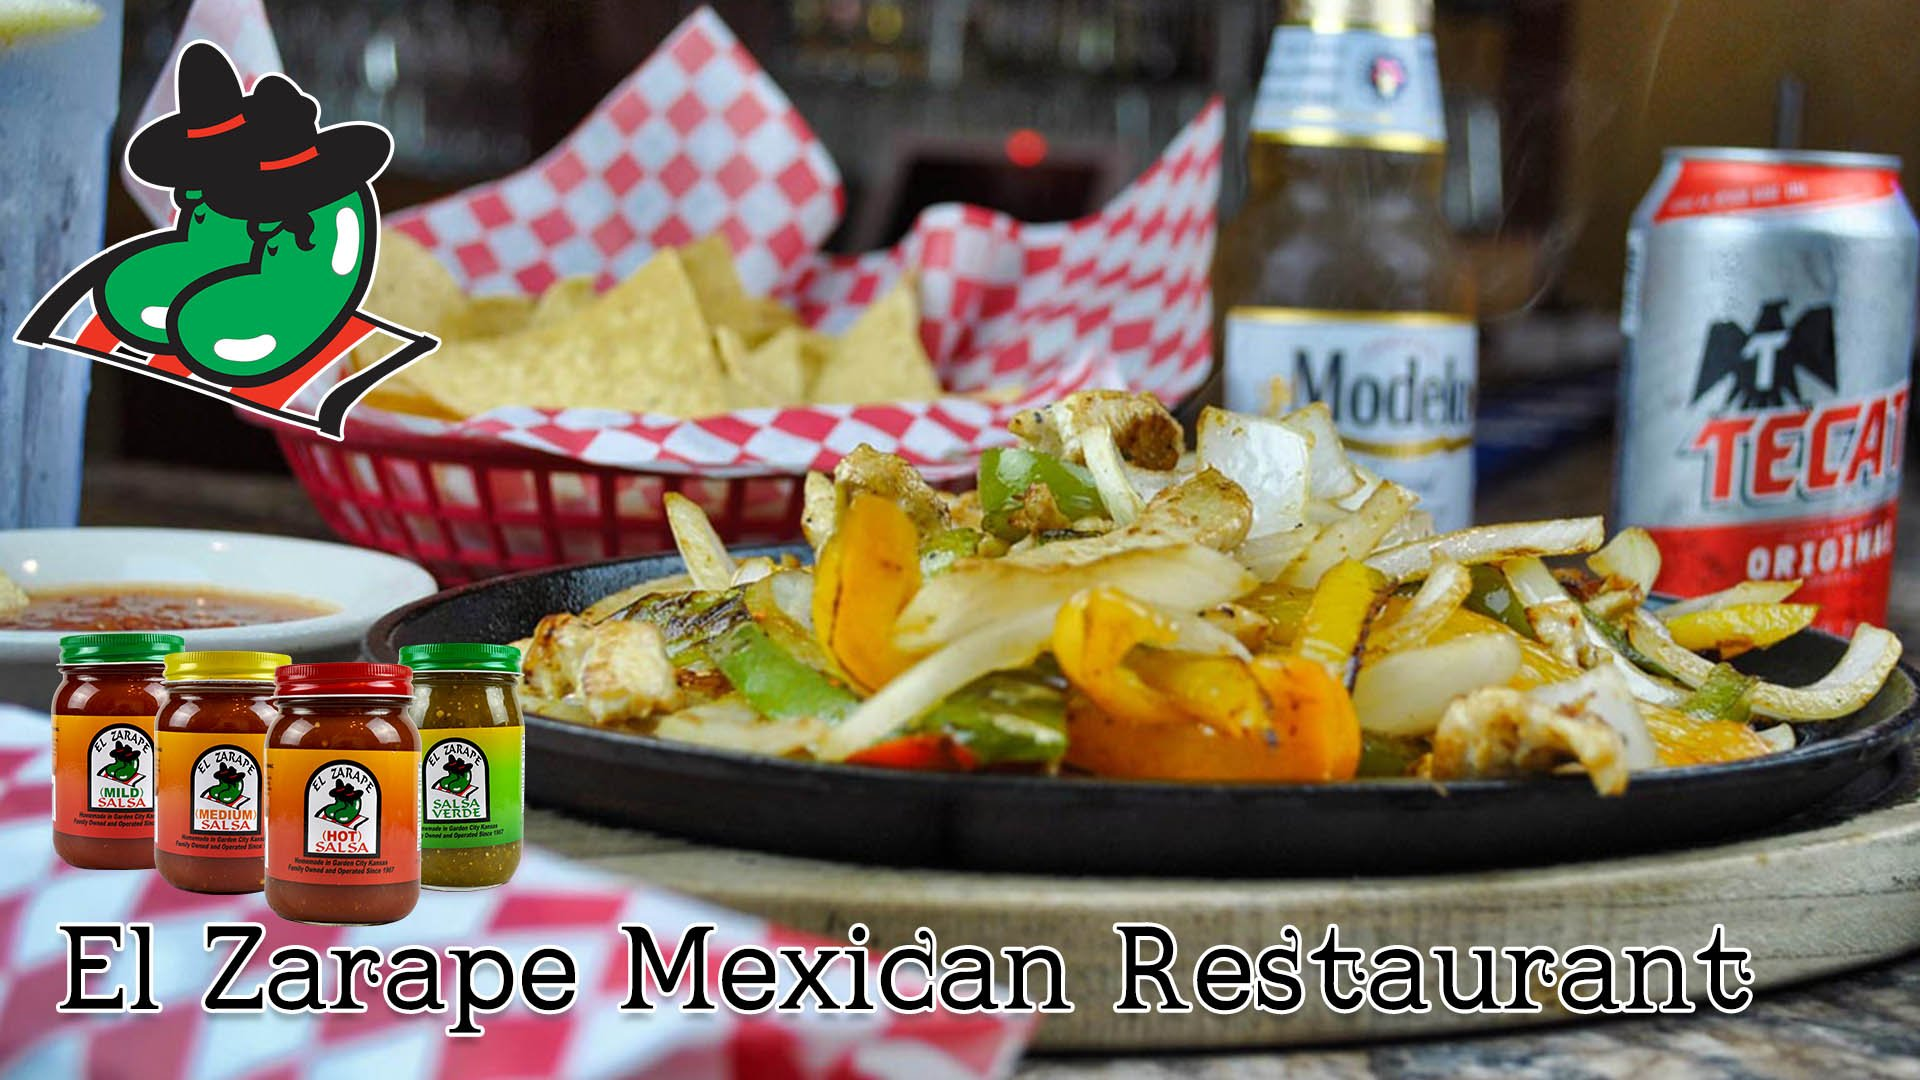 el zarape mexican restaurant garden city ks ForMexican Restaurant Garden City